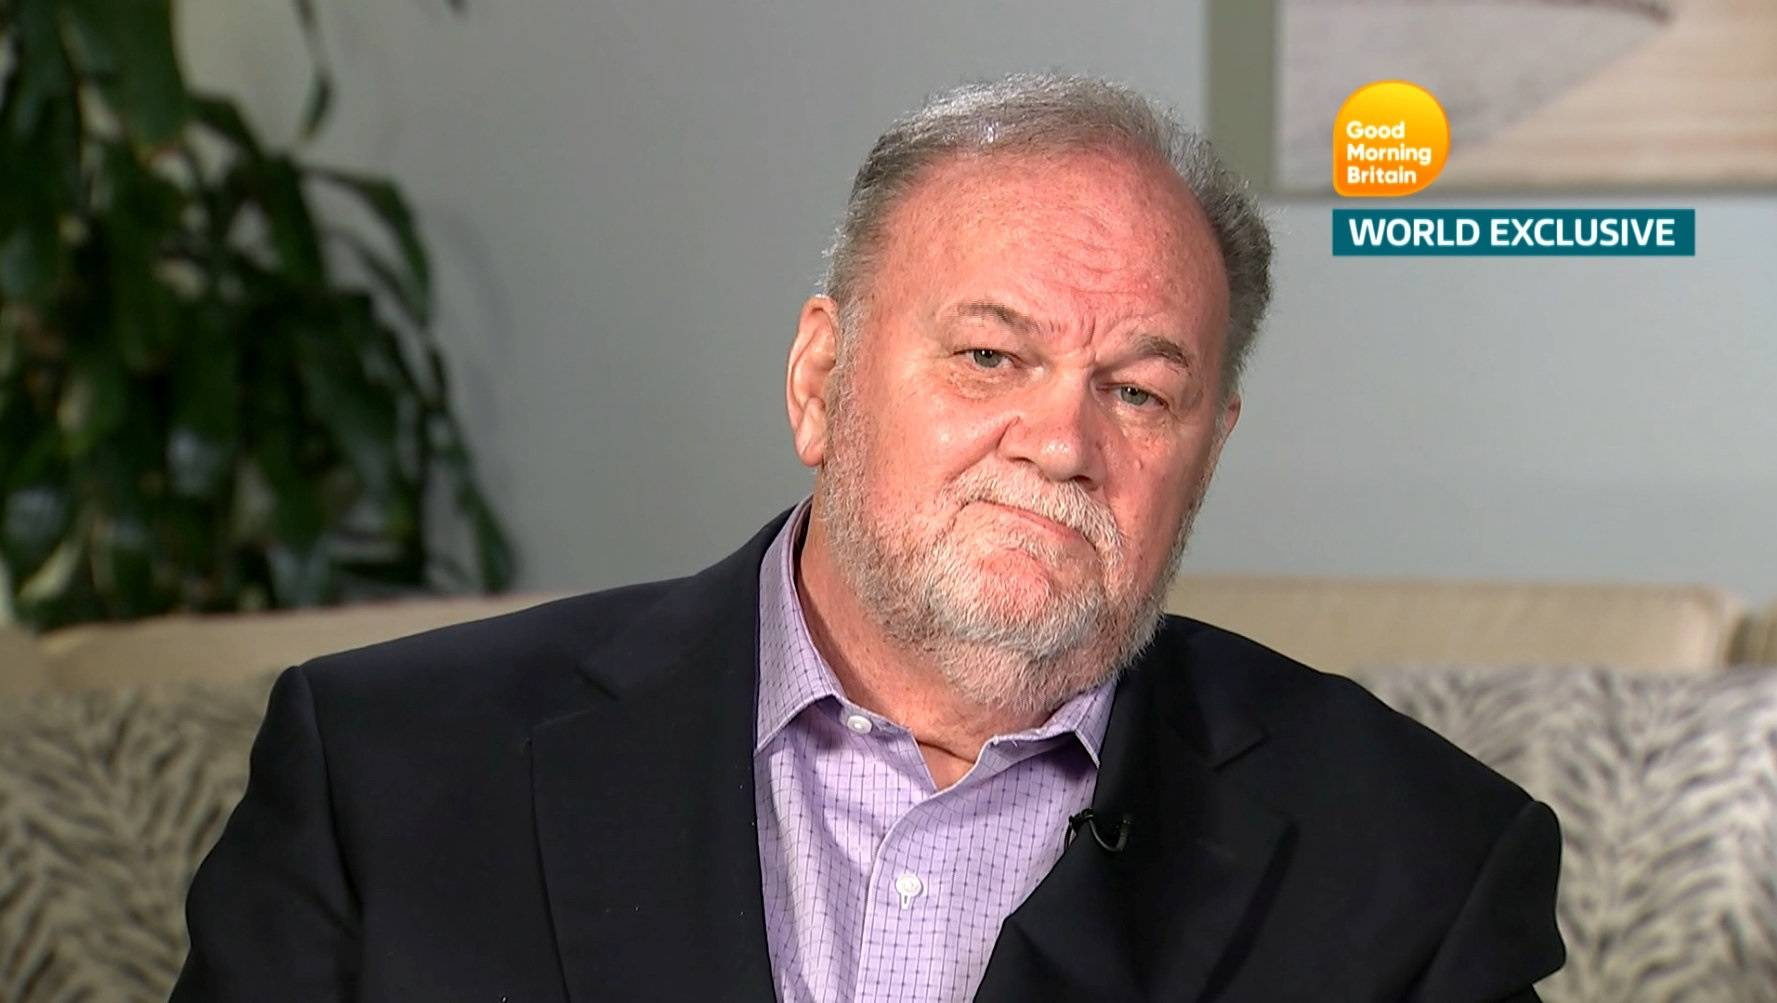 Thomas Markle, Meghan Markle's father, is seen in a still taken from video as he gives an interview to ITV's Good Morning Britain program which is broadcast from London